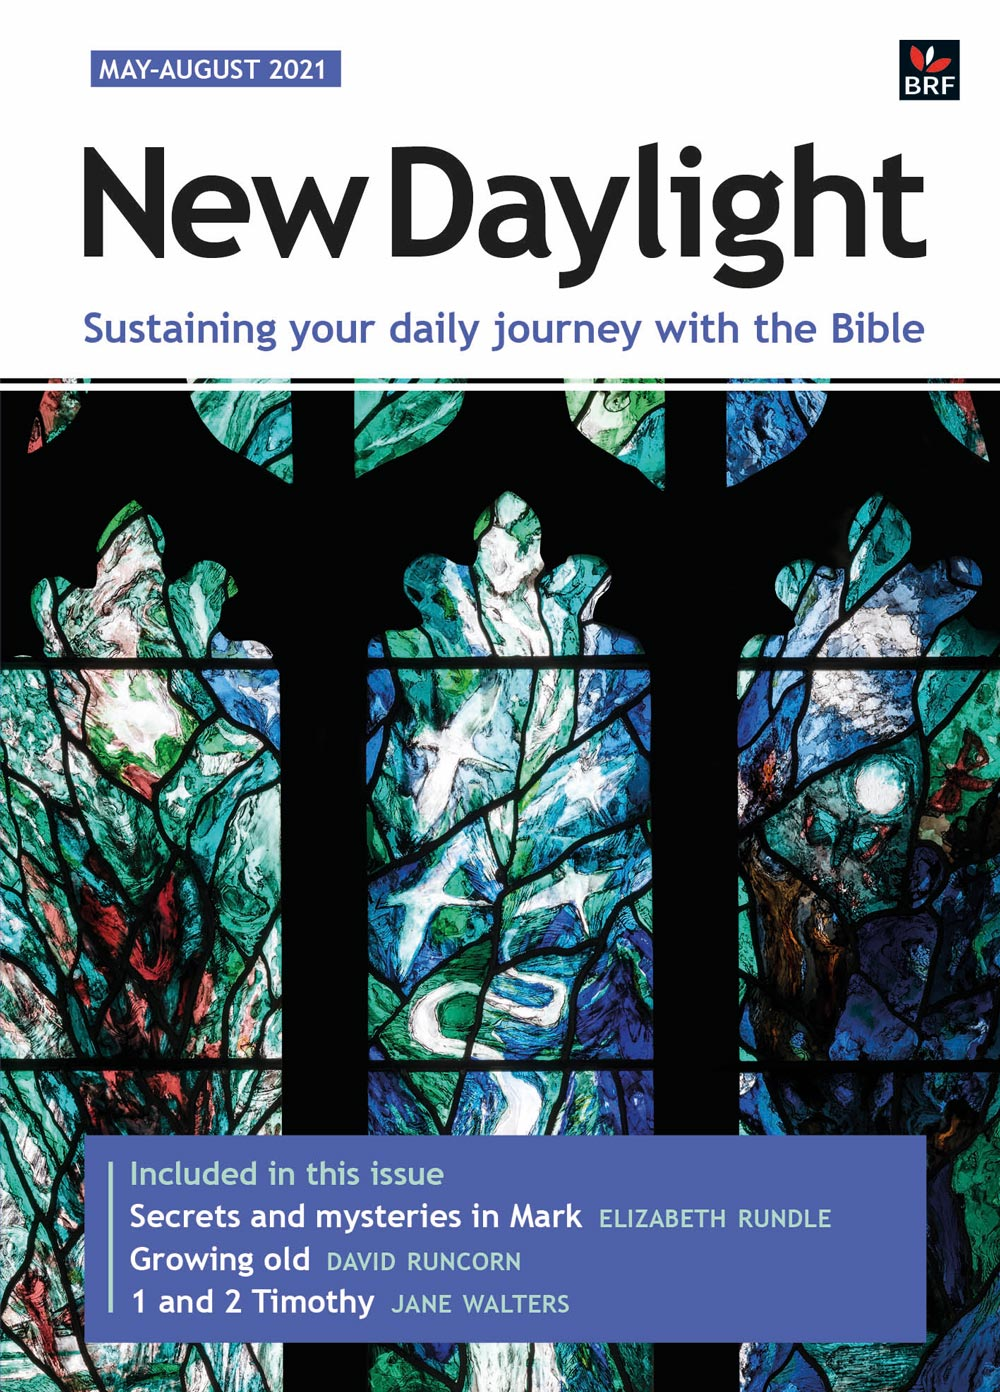 New Daylight May-August 2021